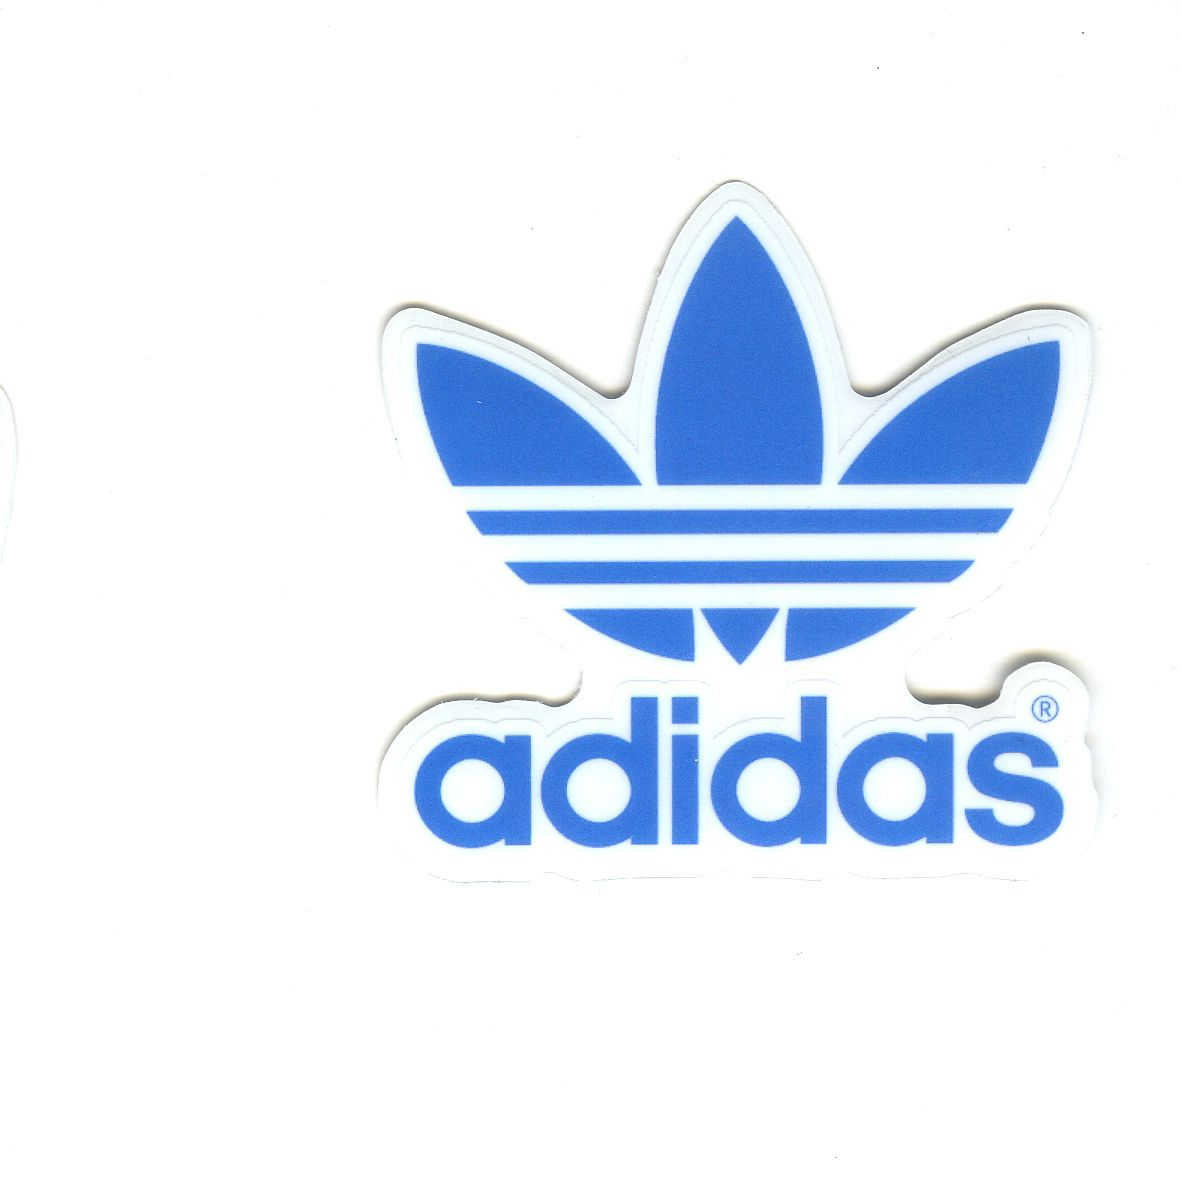 adidas originals sticker